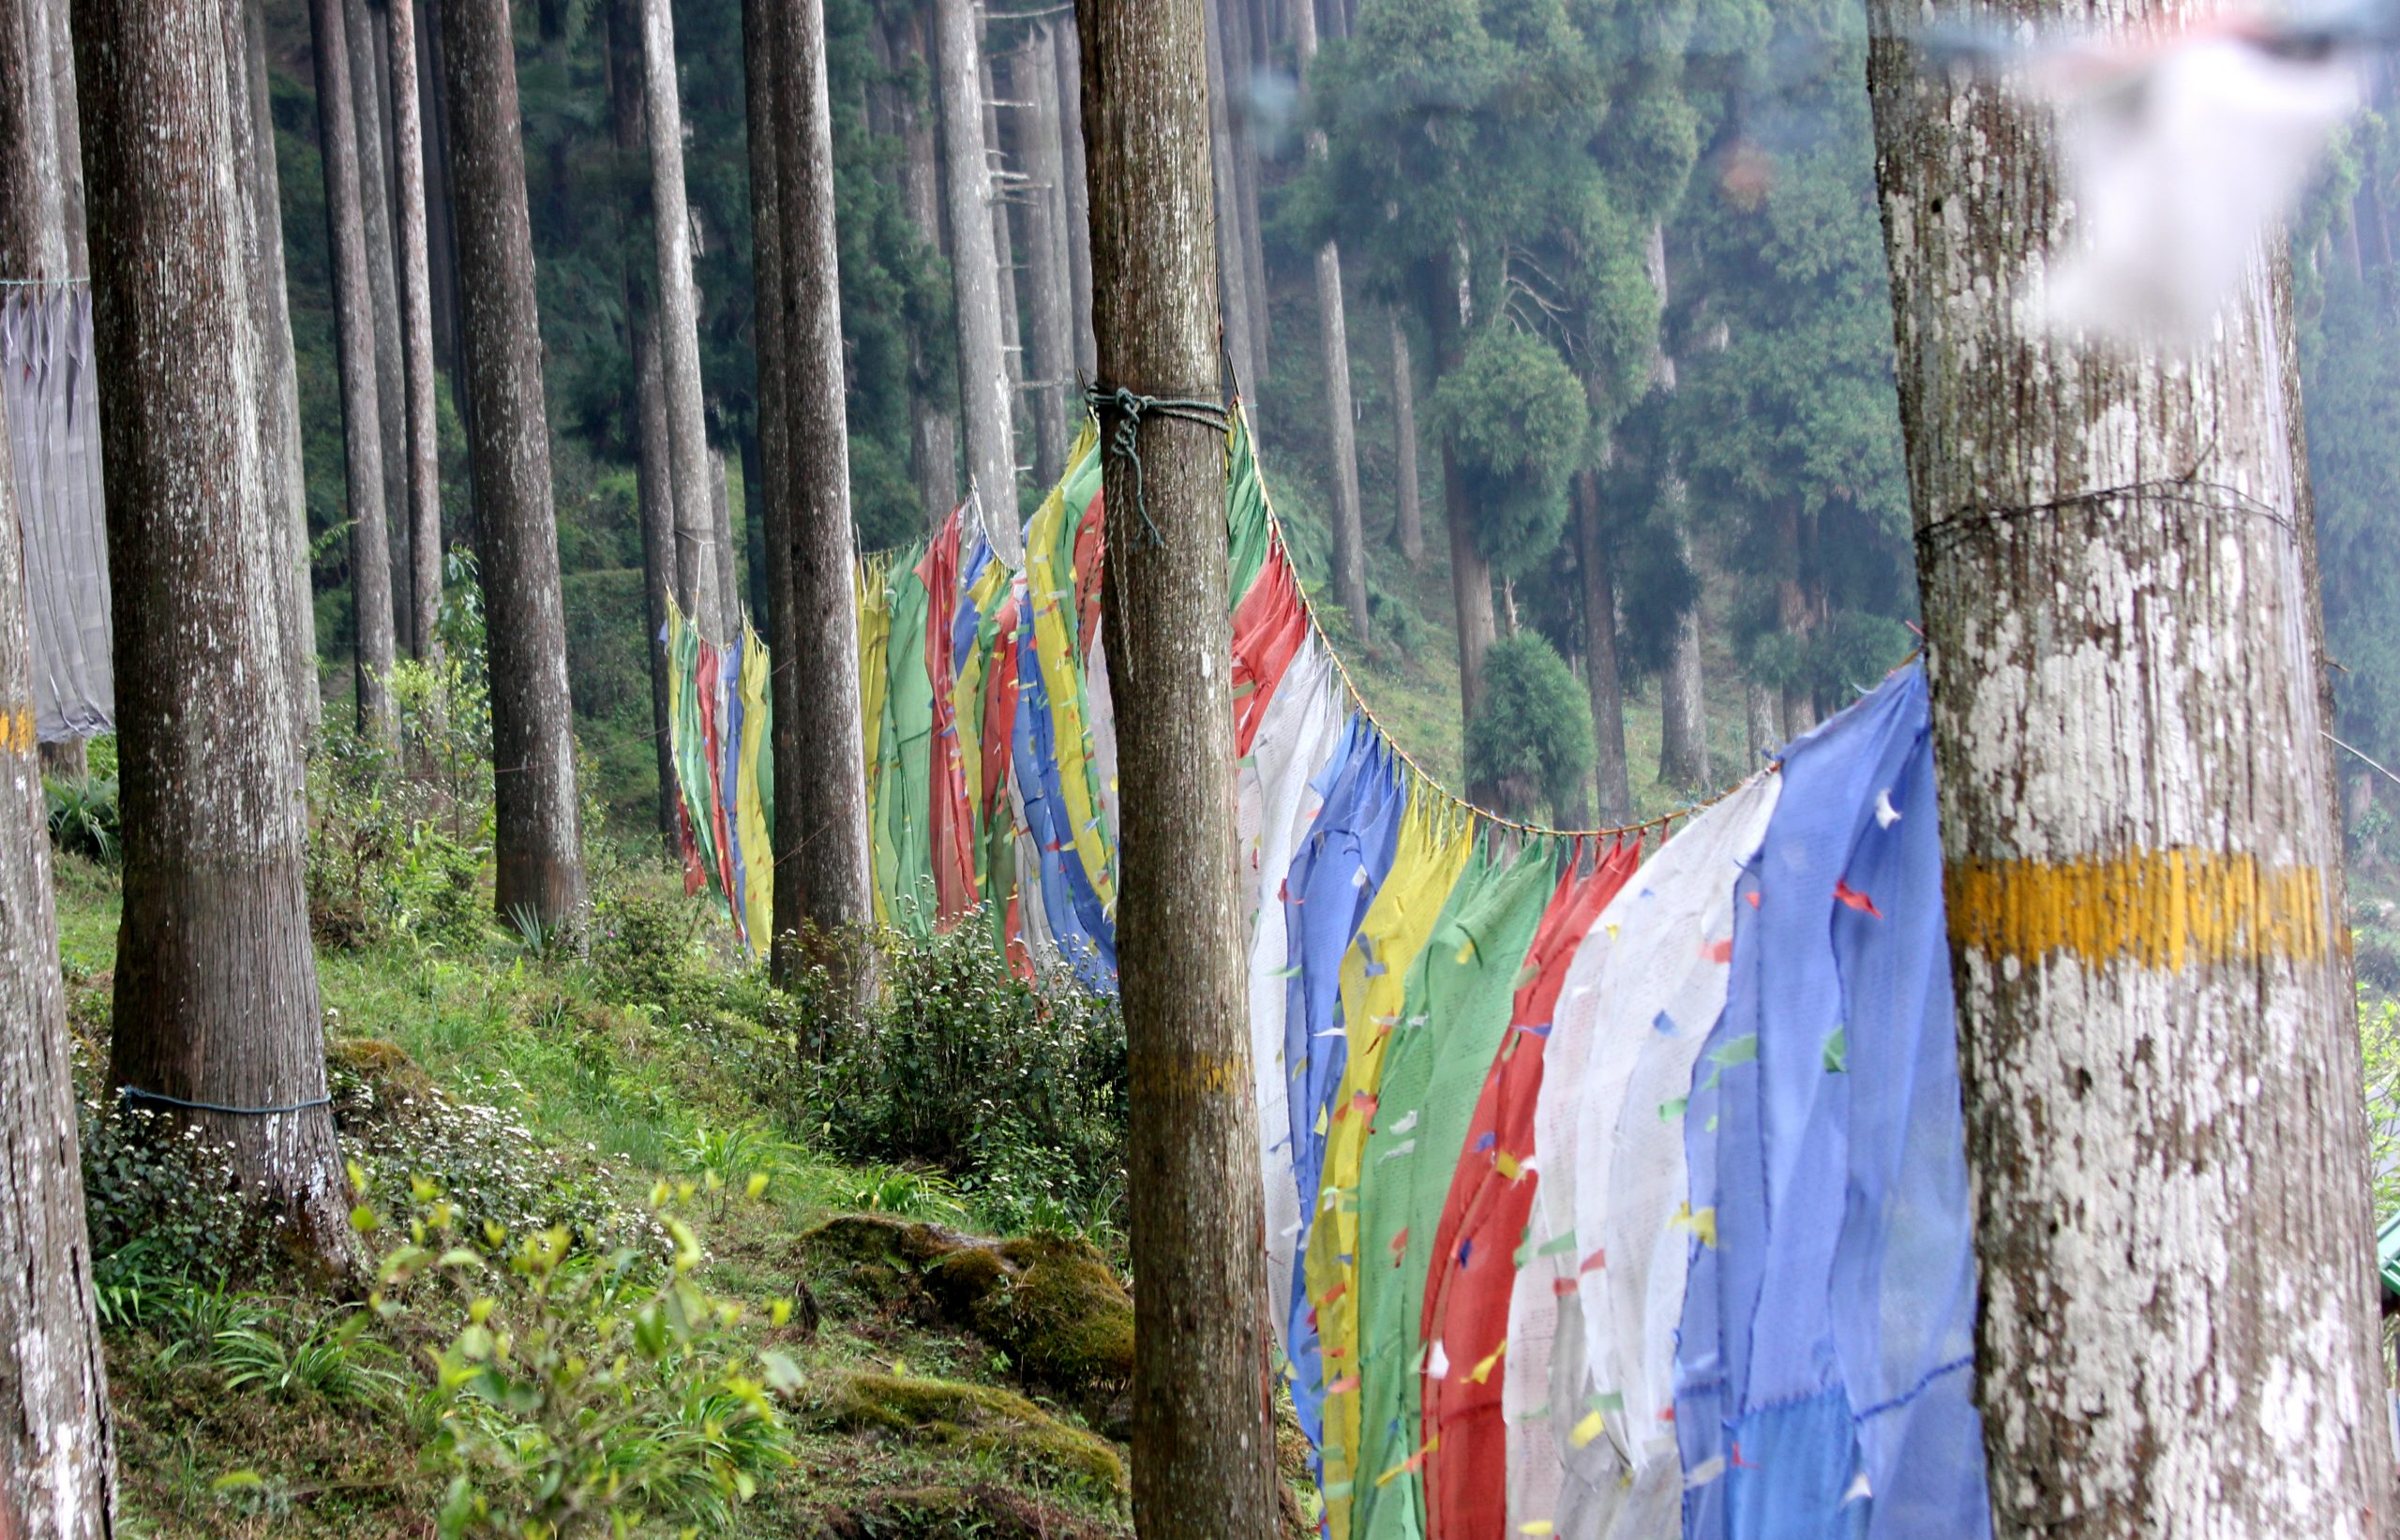 Prayer flags tied on trees